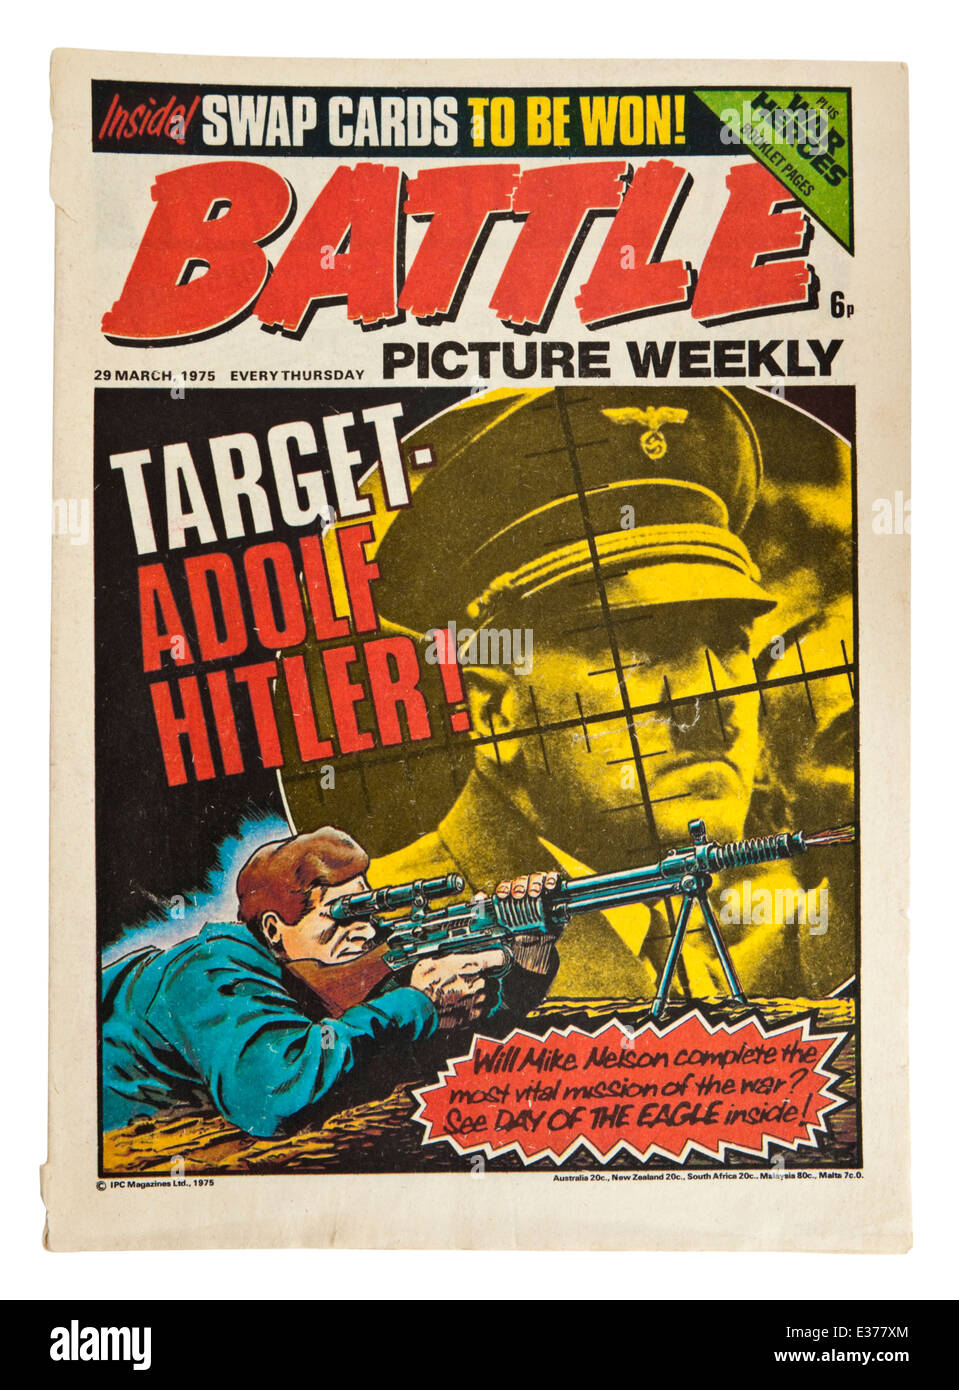 Issue No 4 of 'Battle' (29 March 1975), the popular British comic from the 1970's, with Adolf Hitler - Stock Image